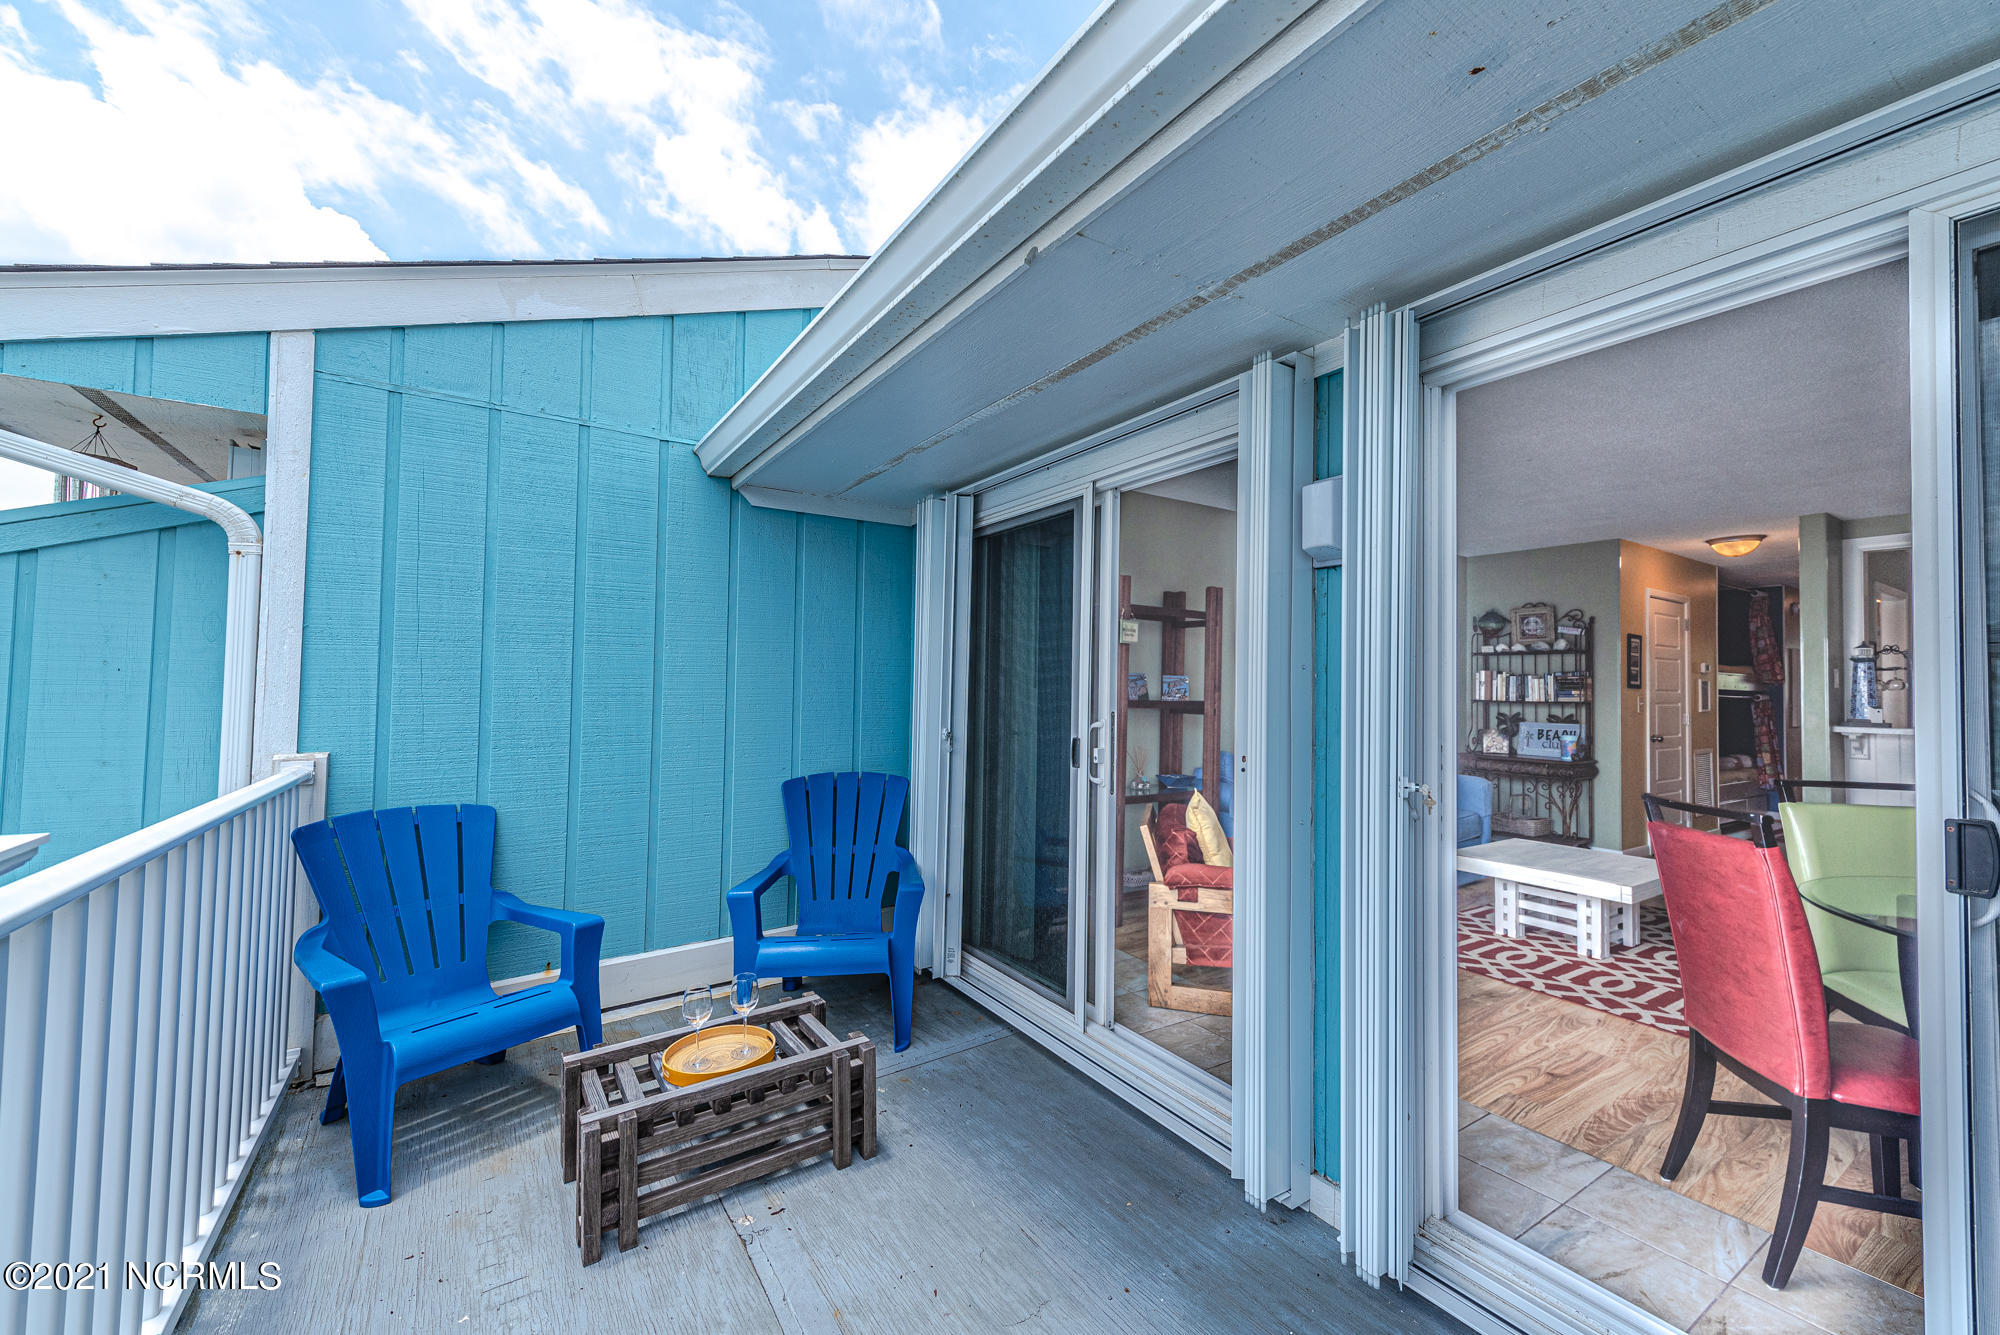 1437 Fort Fisher Boulevard, Kure Beach, North Carolina 28449, 1 Bedroom Bedrooms, 3 Rooms Rooms,1 BathroomBathrooms,Condominium,For sale,Fort Fisher,100277553